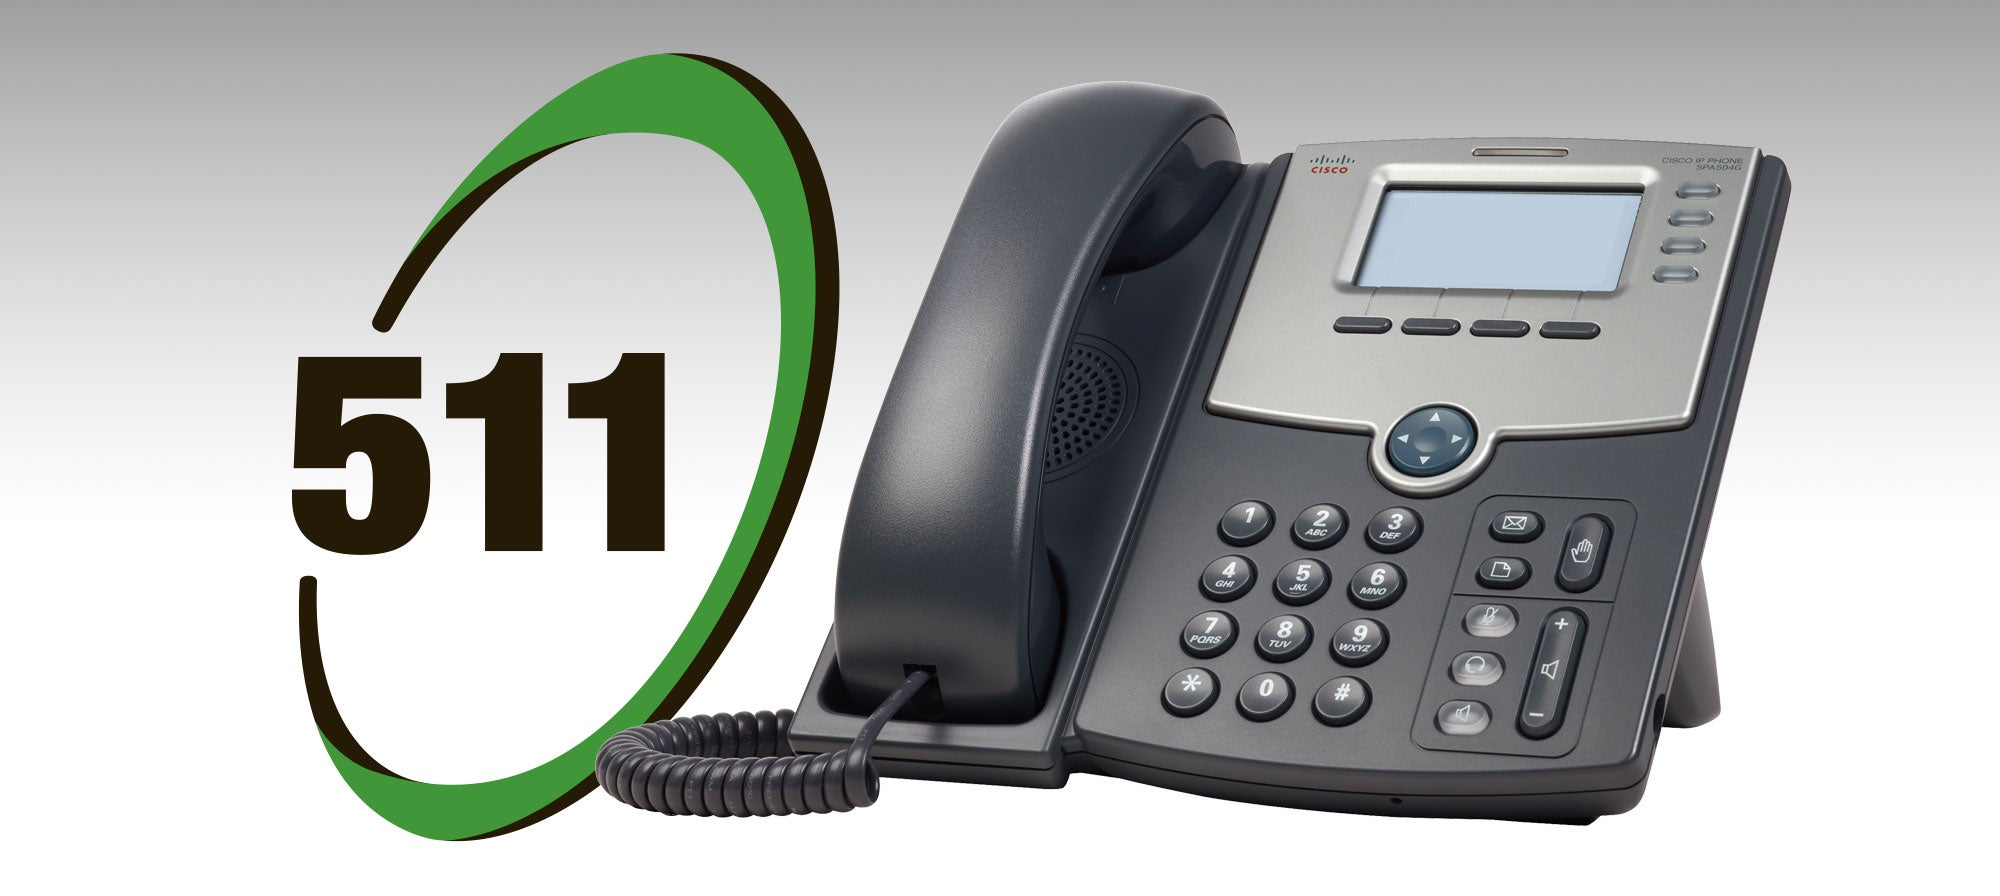 A photo of the 511 logo and a business telephone.